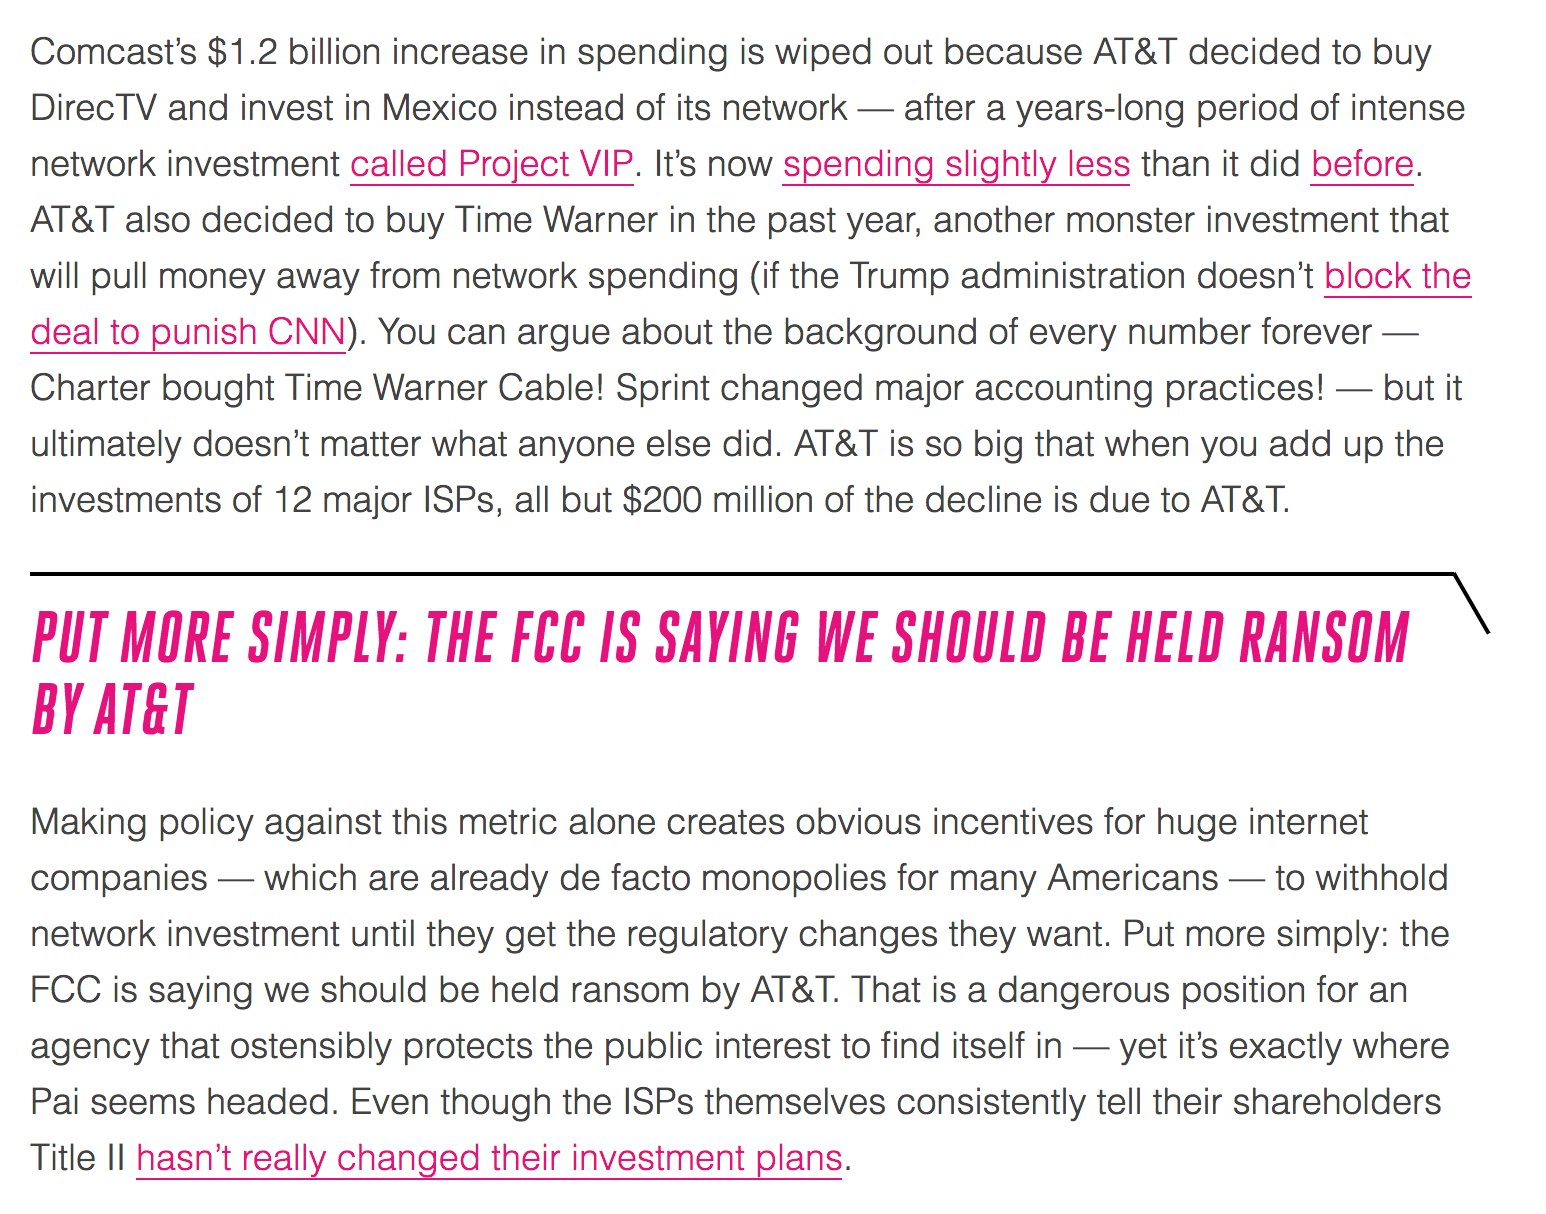 The FCC's anti-net-neutrality argument boils down to letting AT&T set US internet policy. https://t.co/SBquQH8c6B https://t.co/r7cg7SK39T